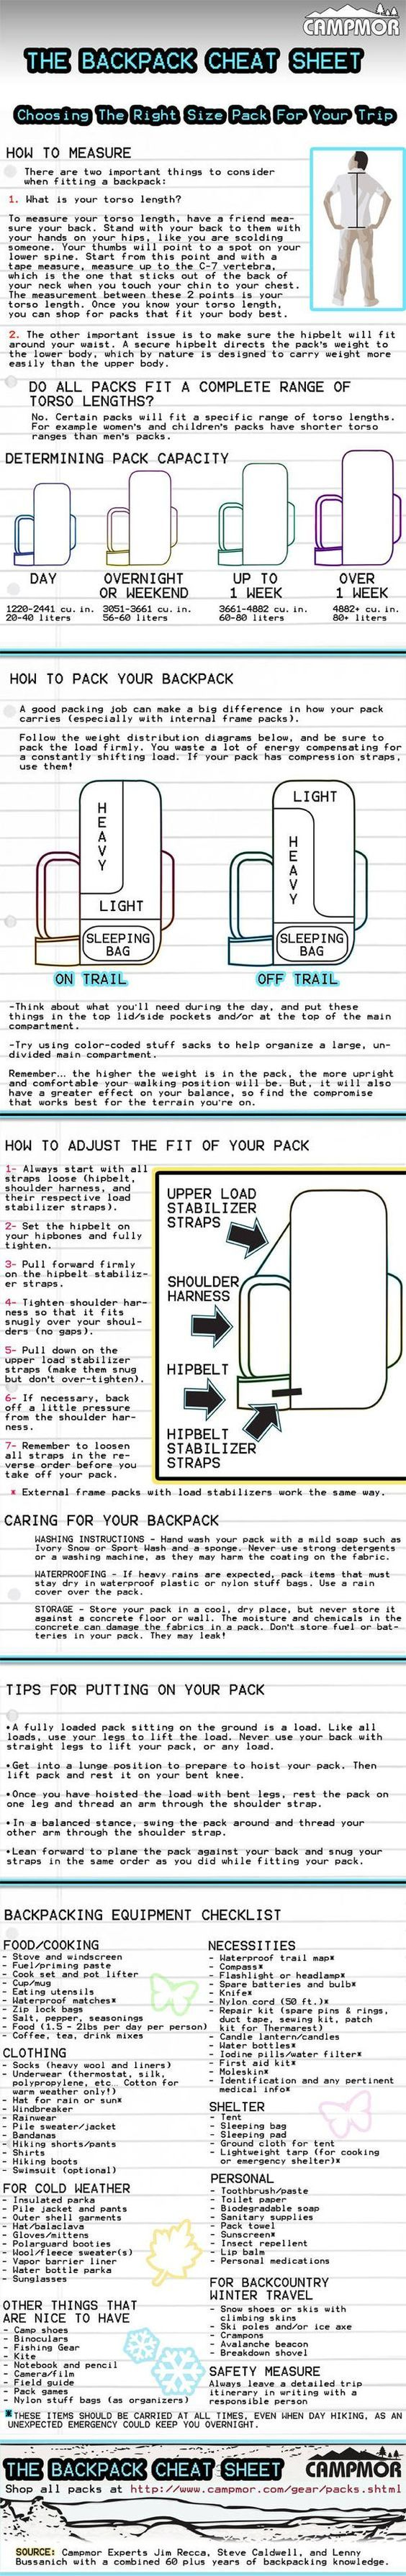 The Backpack Cheat Sheet  Backpacker And Campinghacks